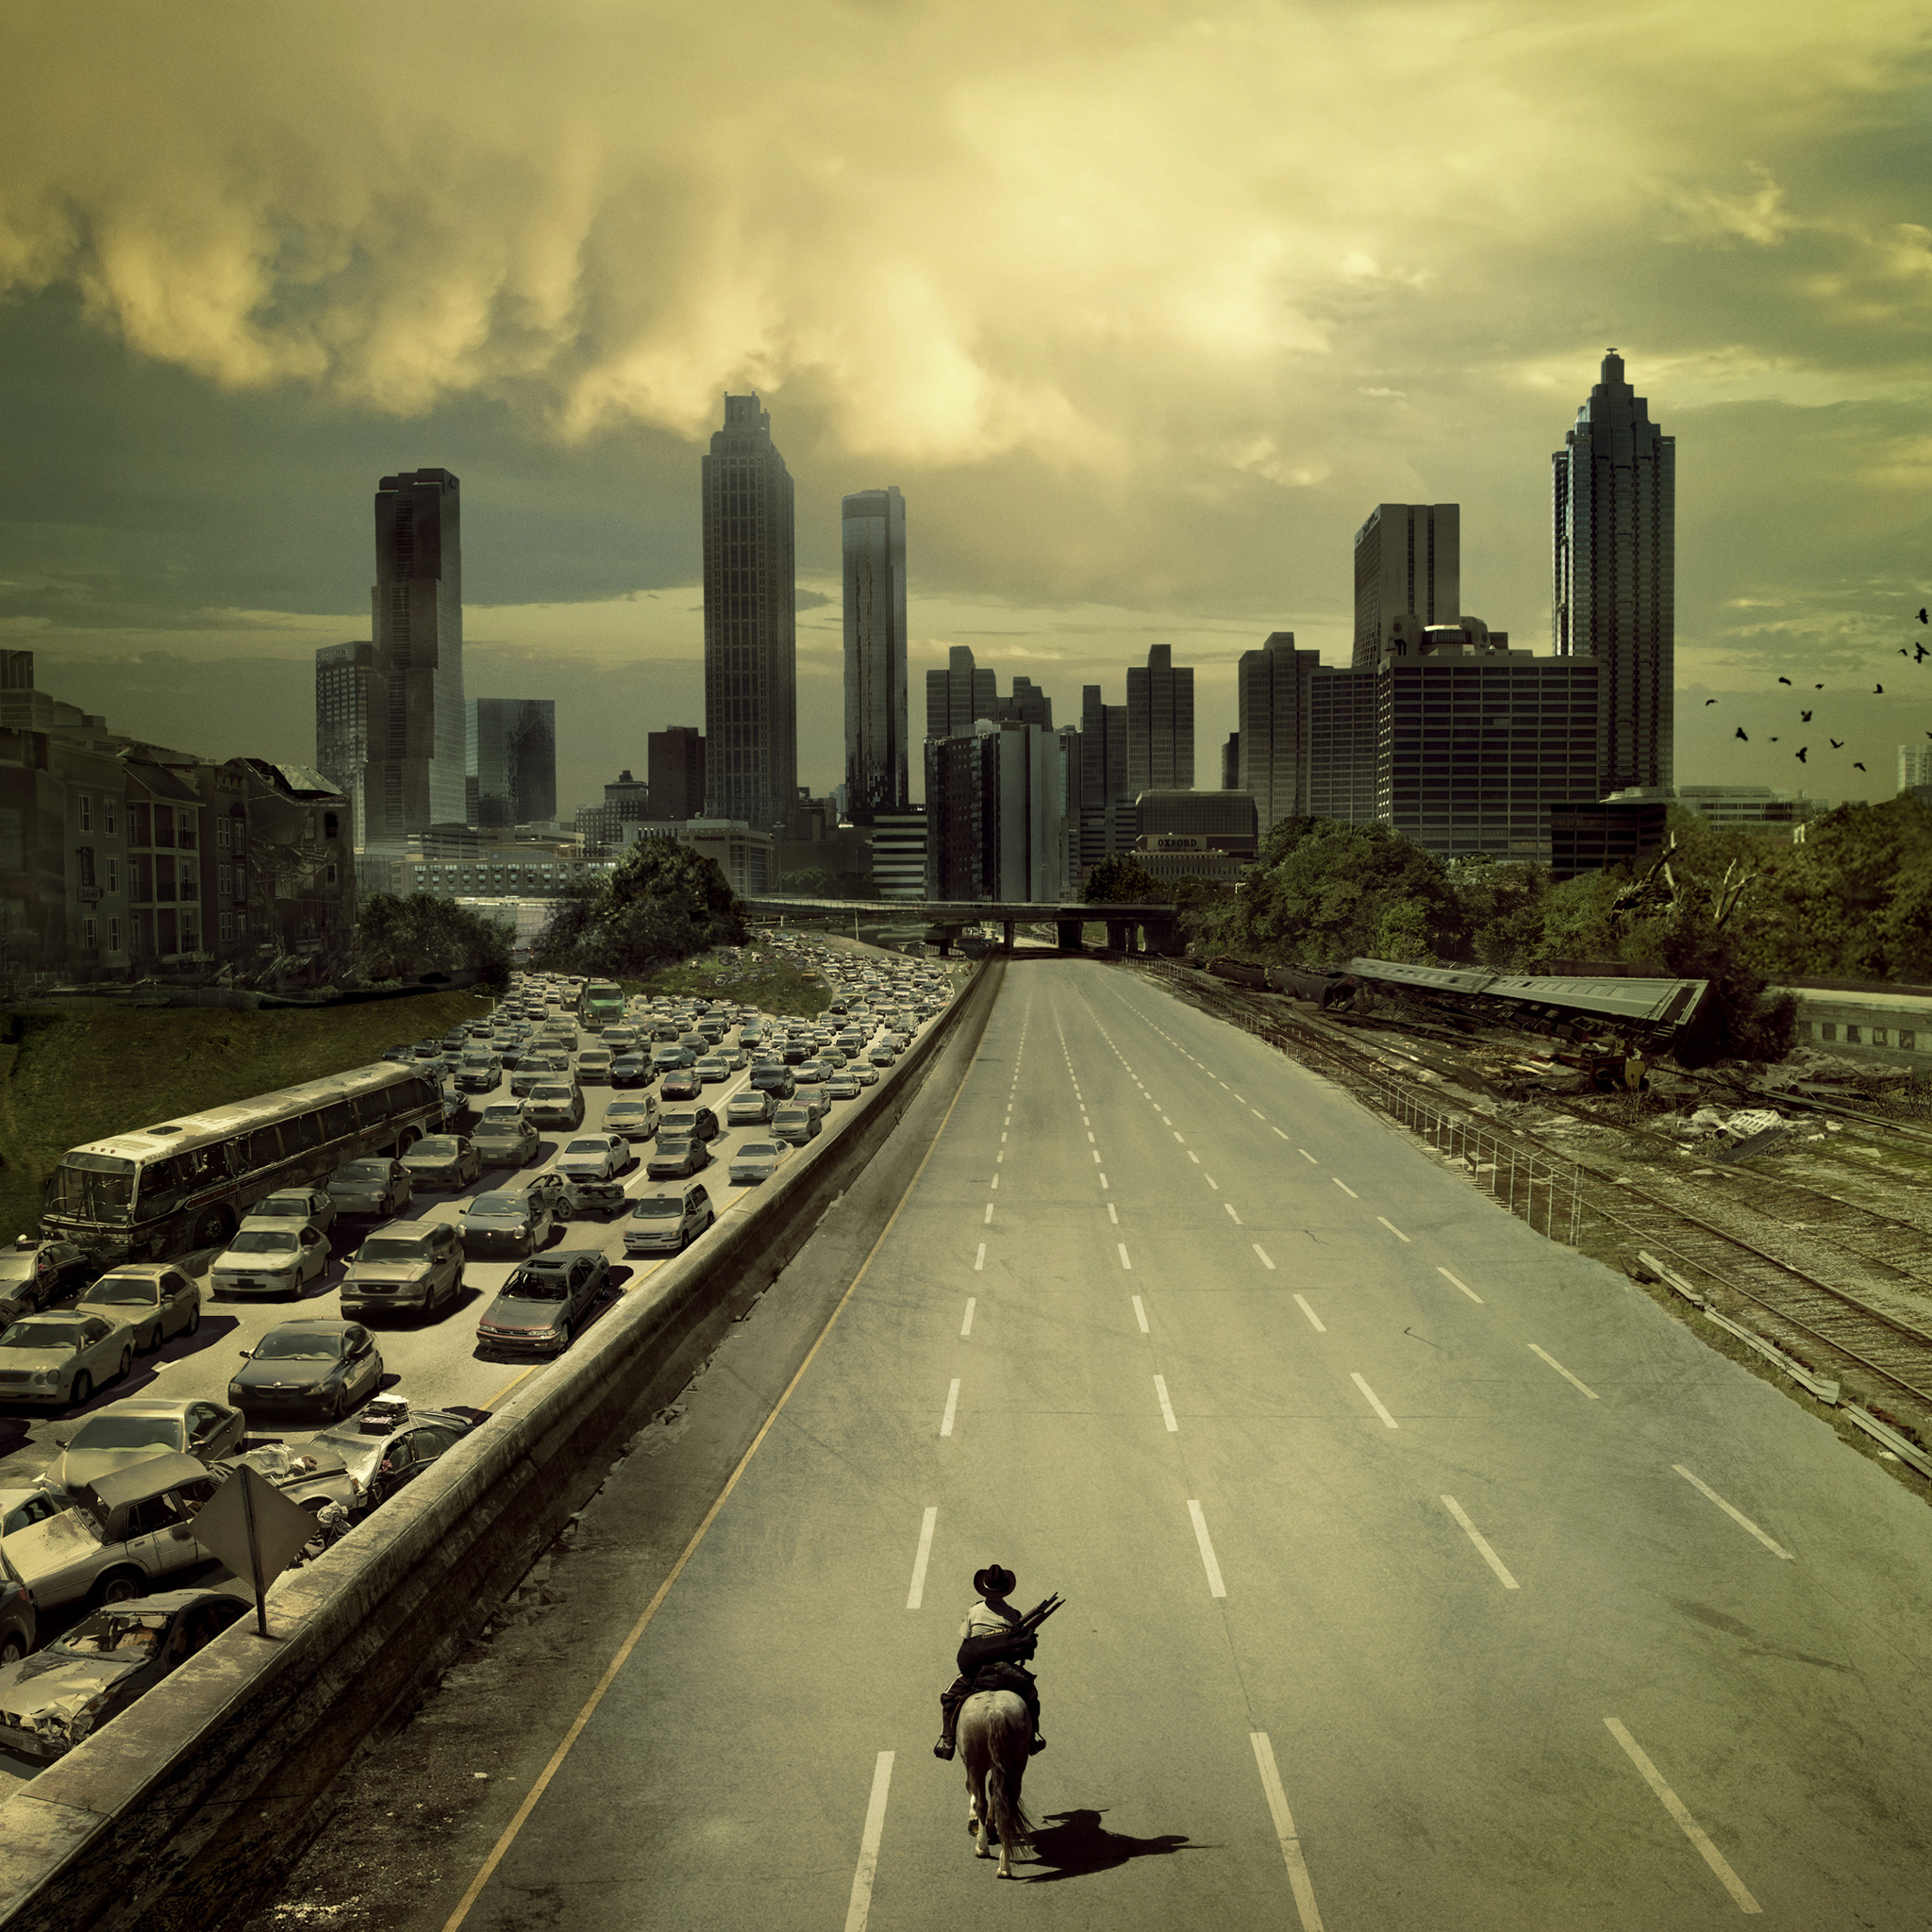 The Walking Dead 3Wallpapers iPad Retina The Walking Dead   iPad Retina